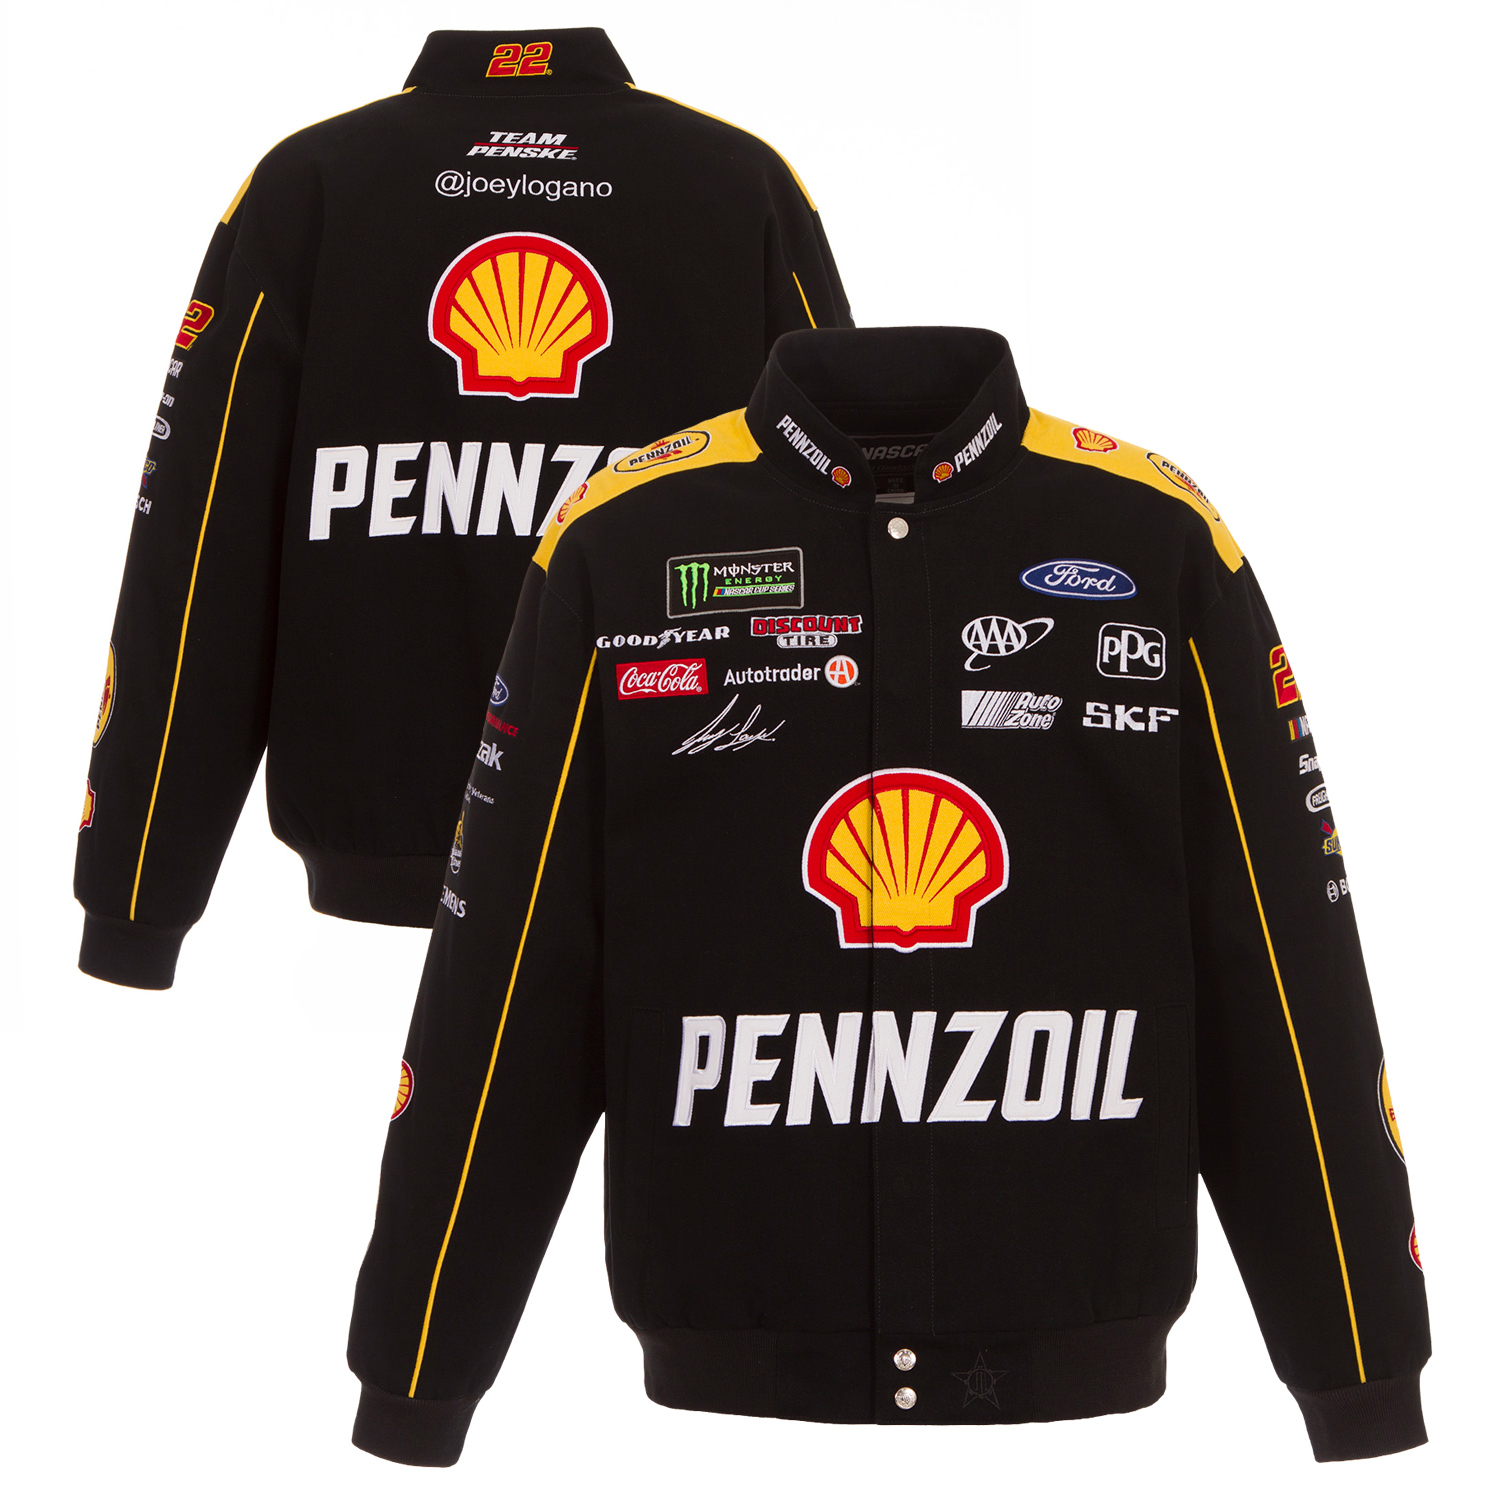 Joey Logano JH Design Pennzoil Full-Snap Twill Uniform Jacket Black Yellow by JH Design Group